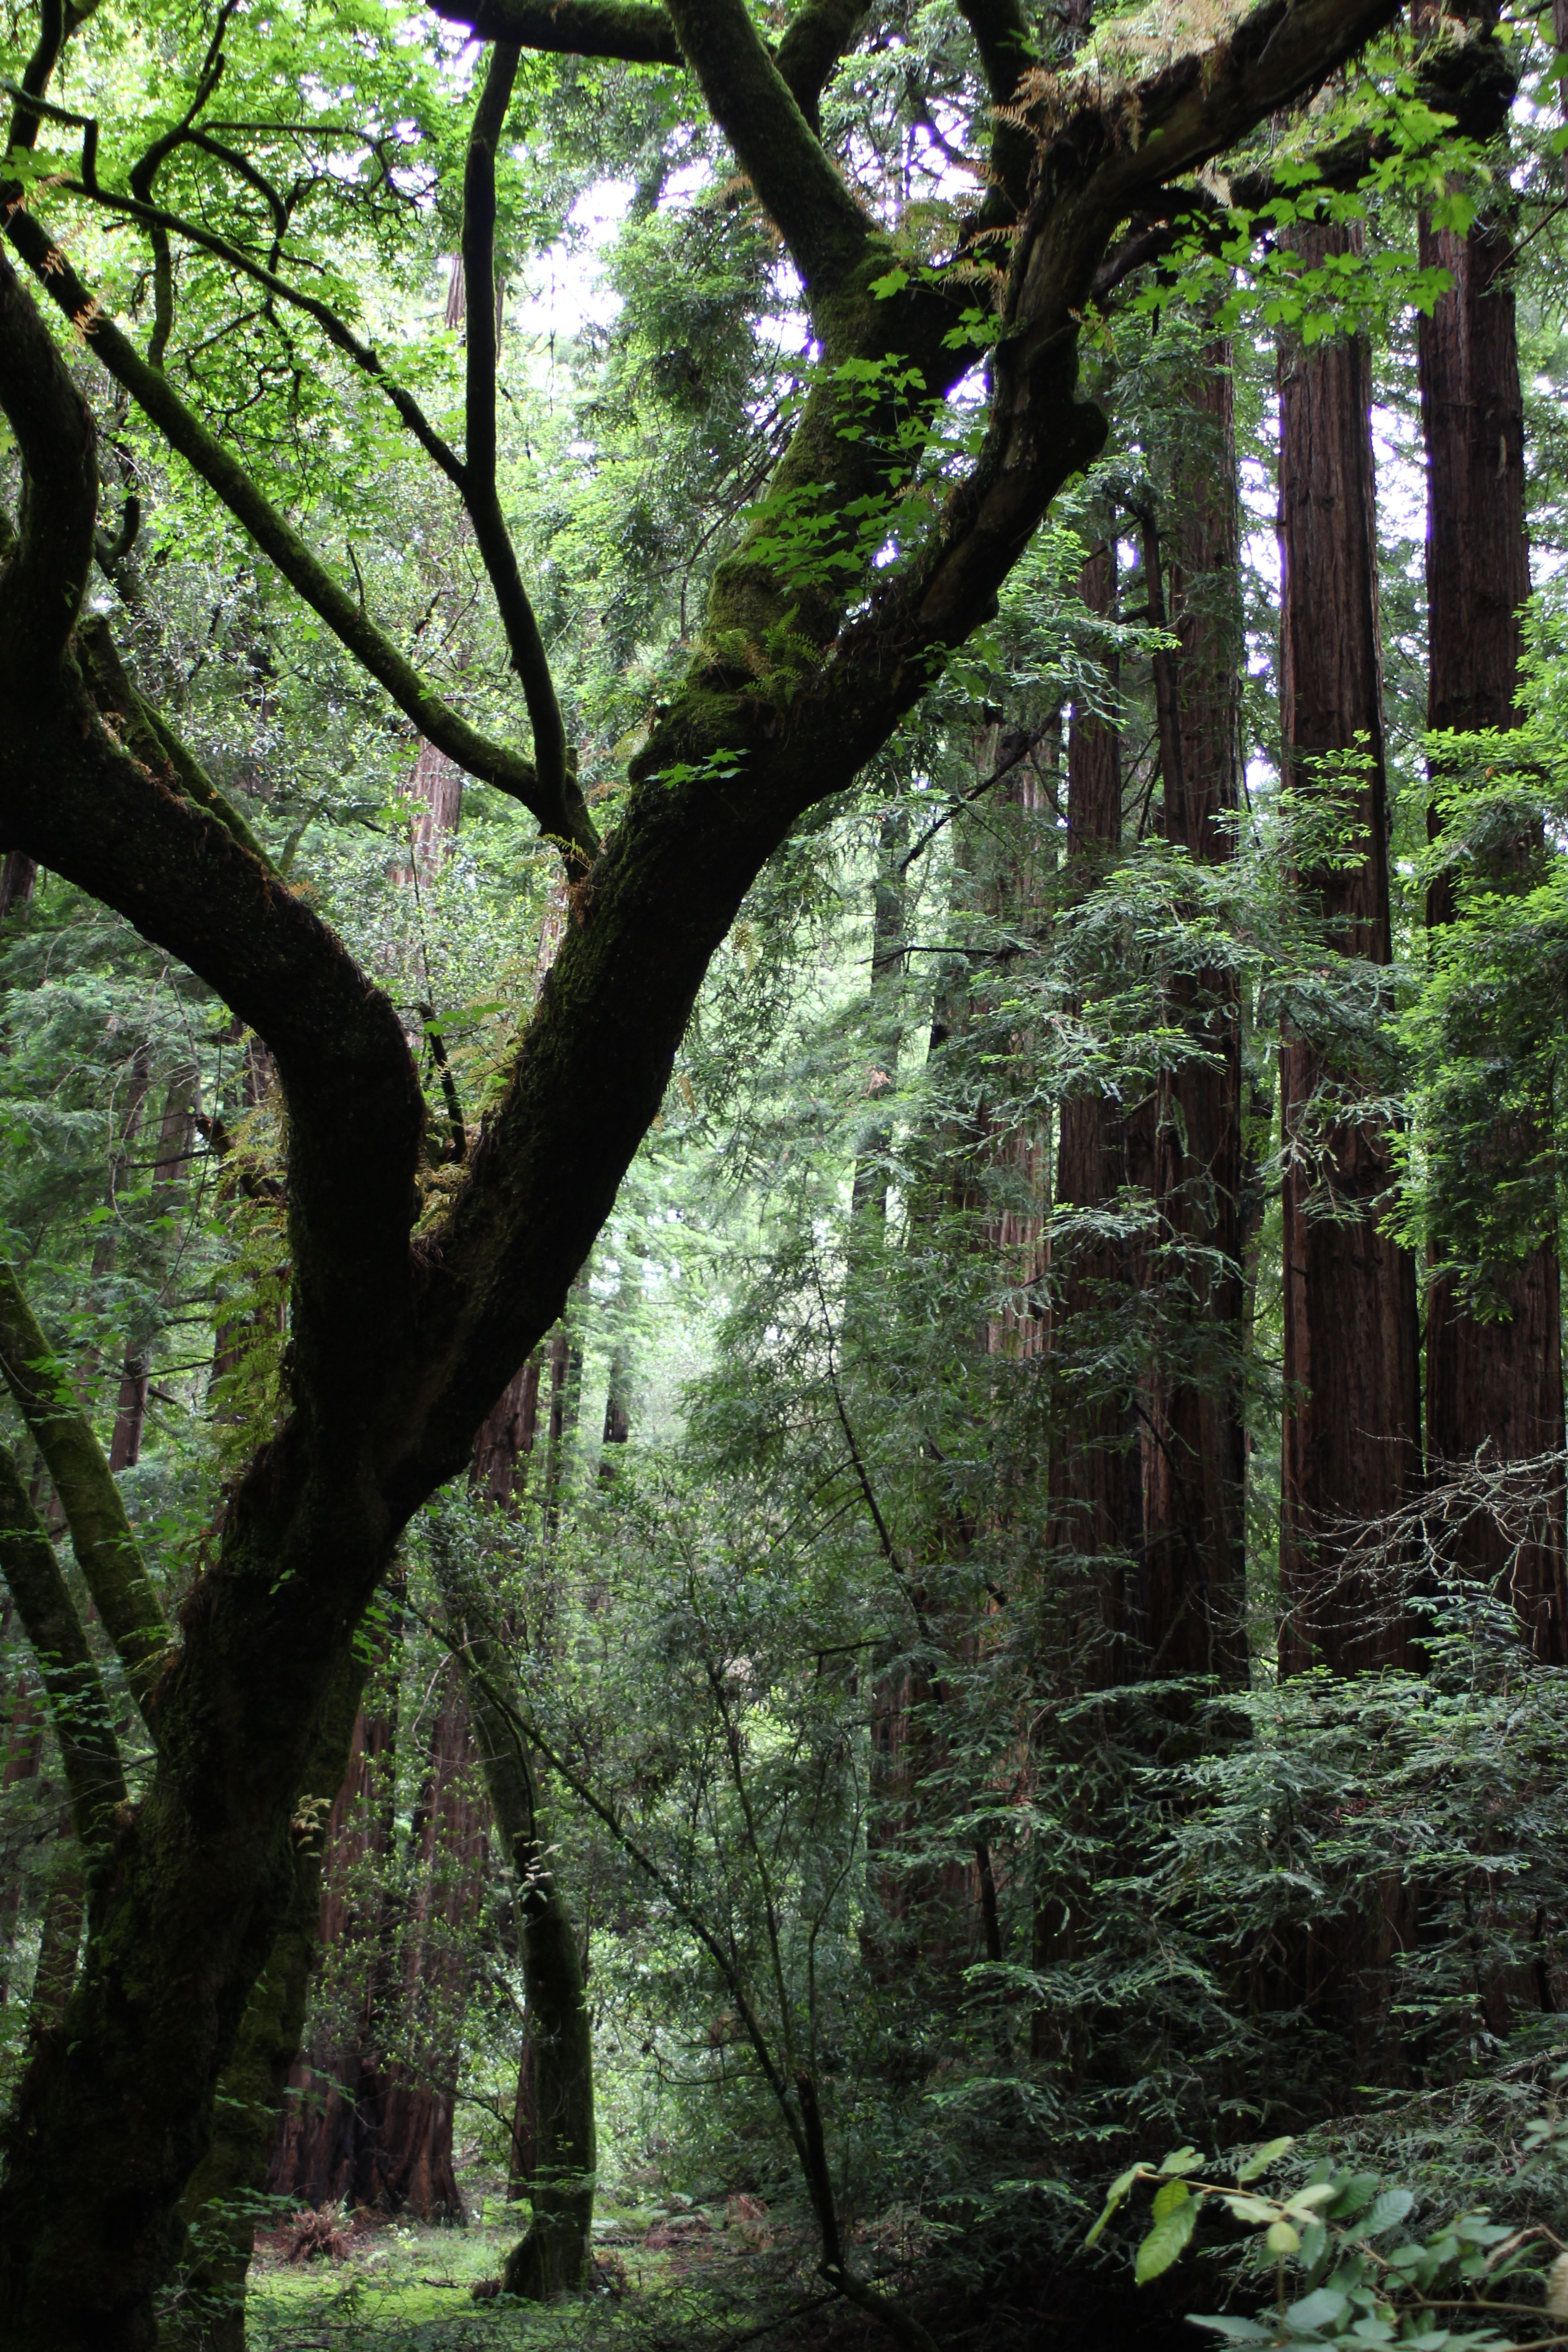 muir woods national monument A slow walk through almost any landscape in golden gate national recreation area during the rainy season can produce a world of wonder at your feet, but muir woods national monument highlights some of the showiest.